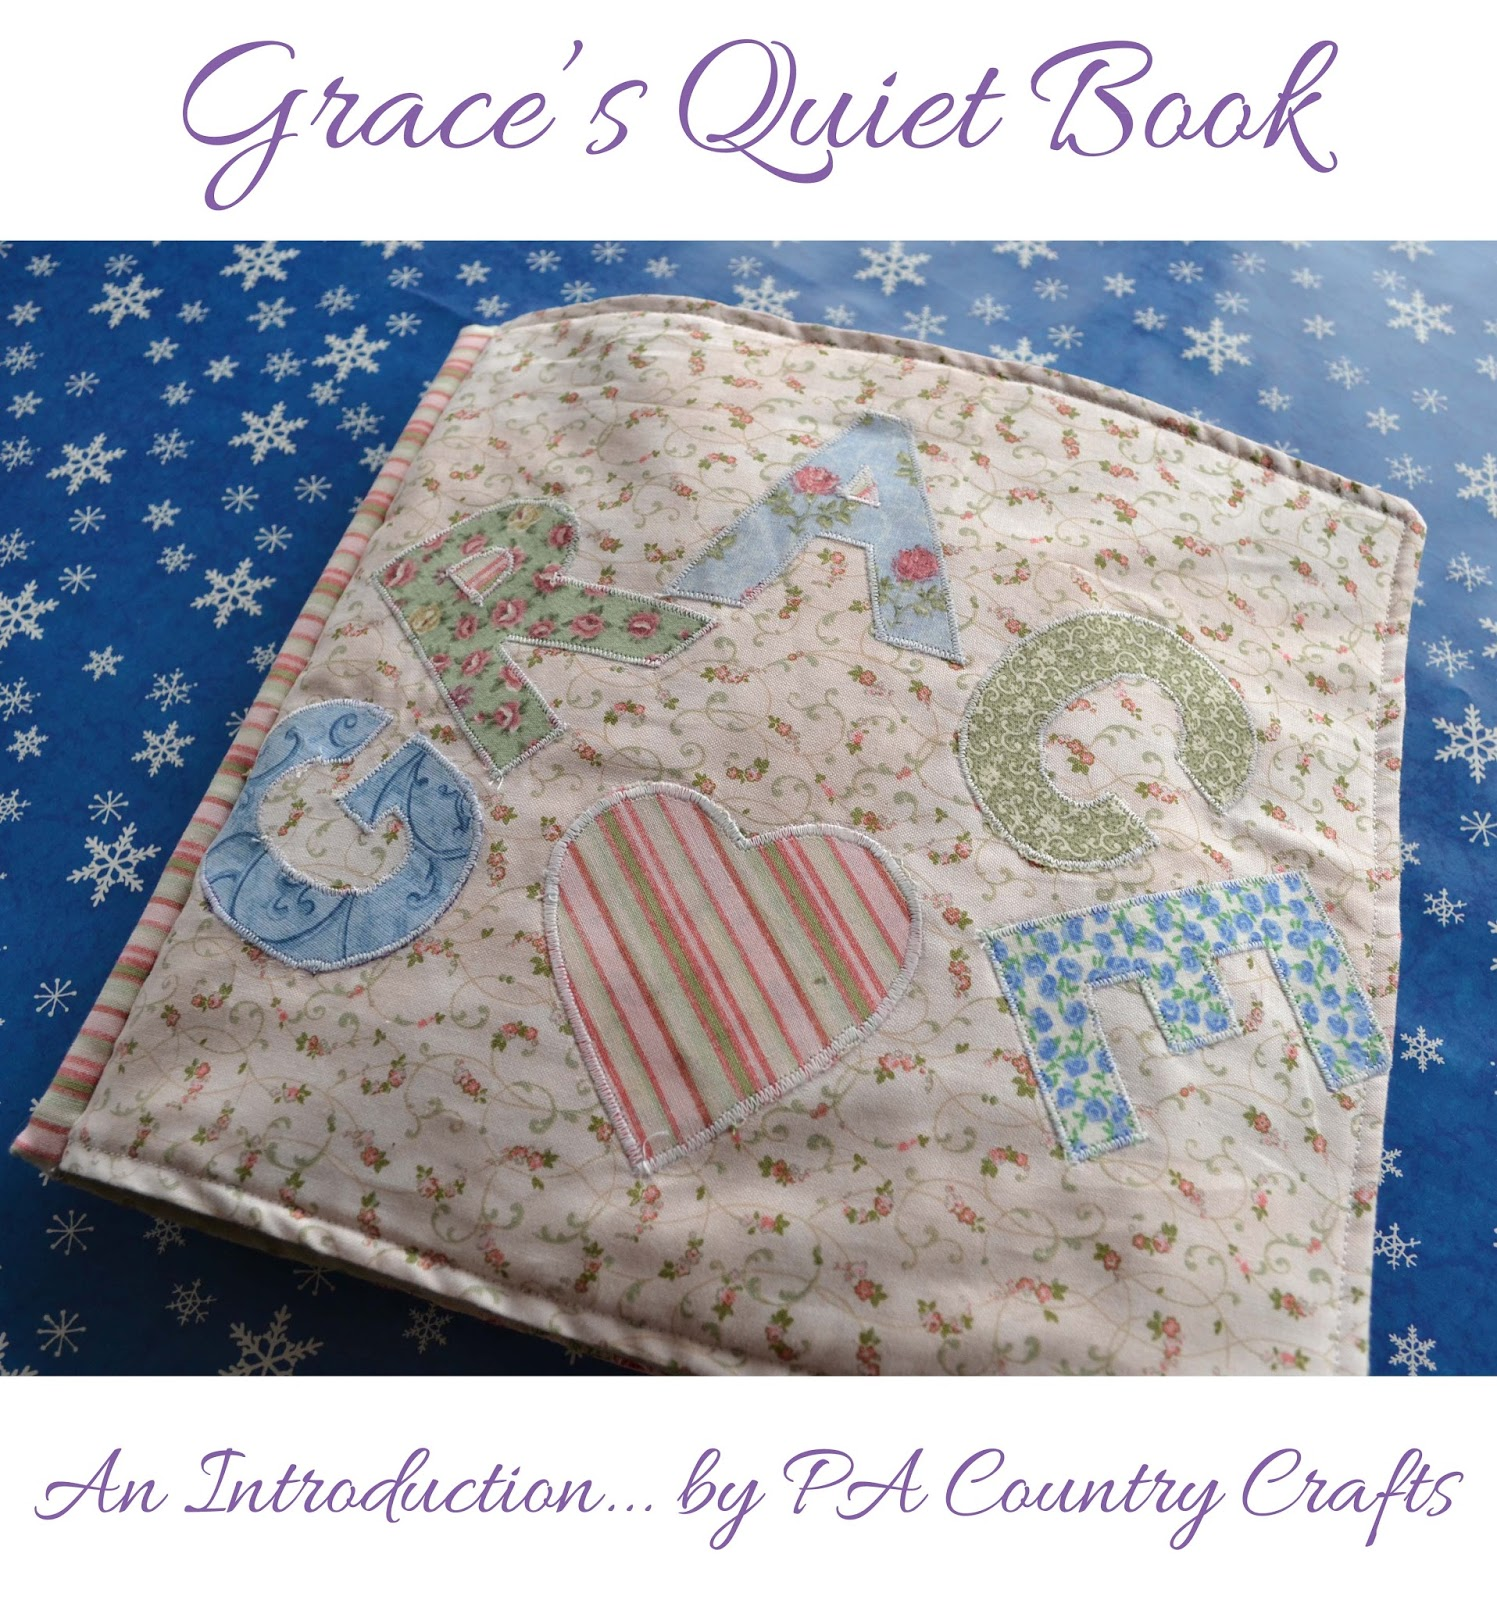 Grace's Quiet Book Introduction